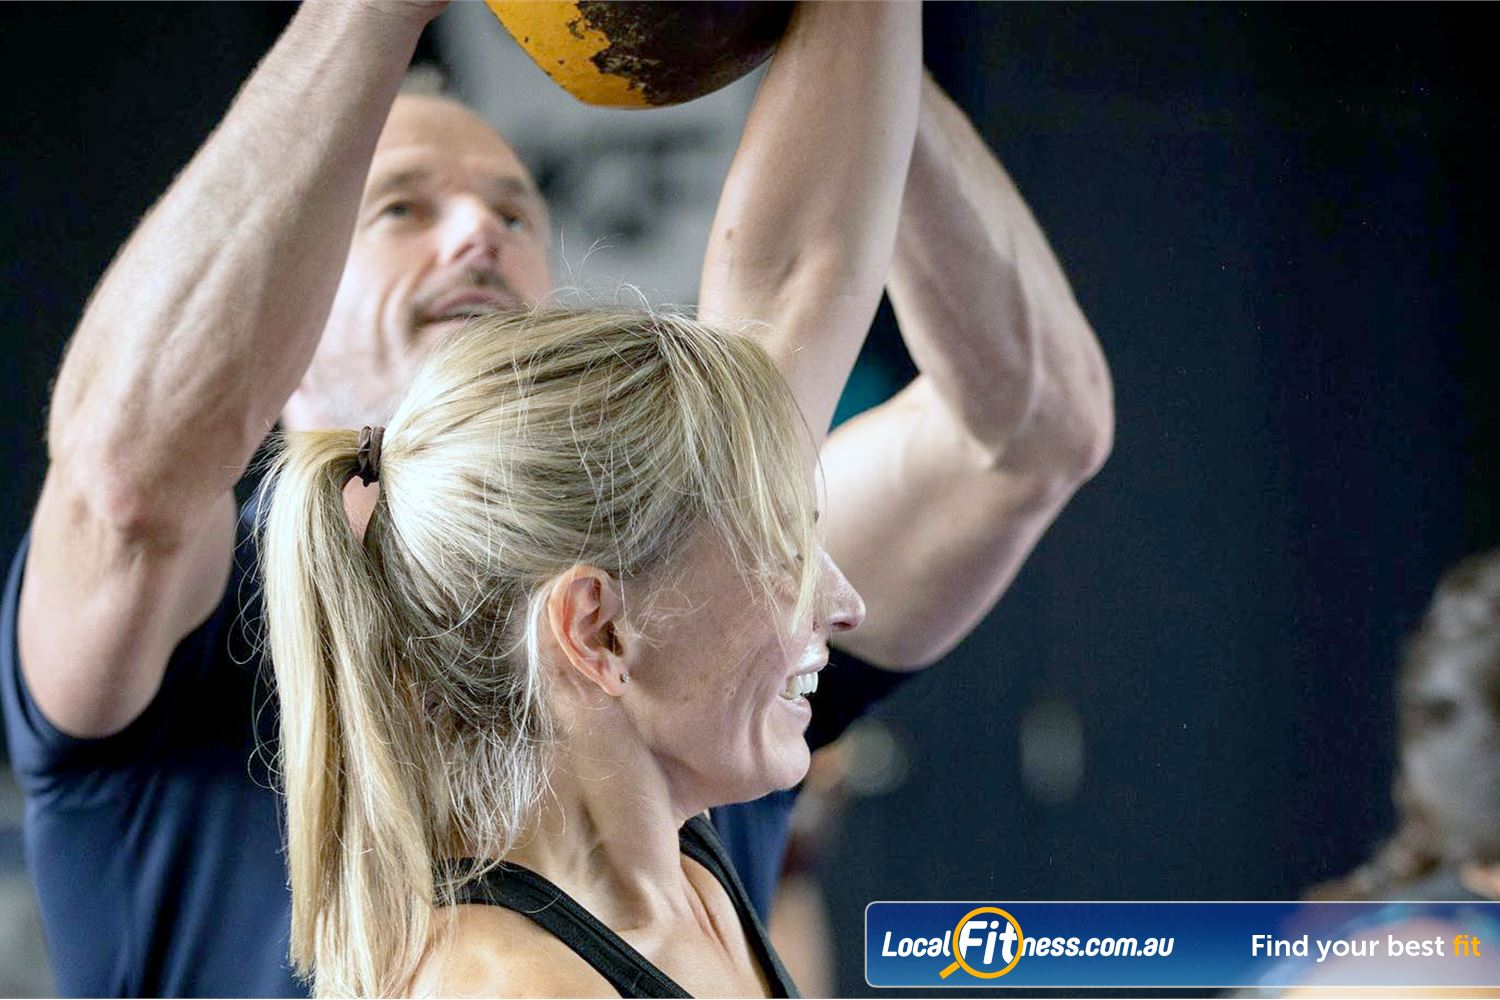 KettleFit Near Balaclava Our Windsor personal trainers will inspire you to regain your power with Kettlebells.